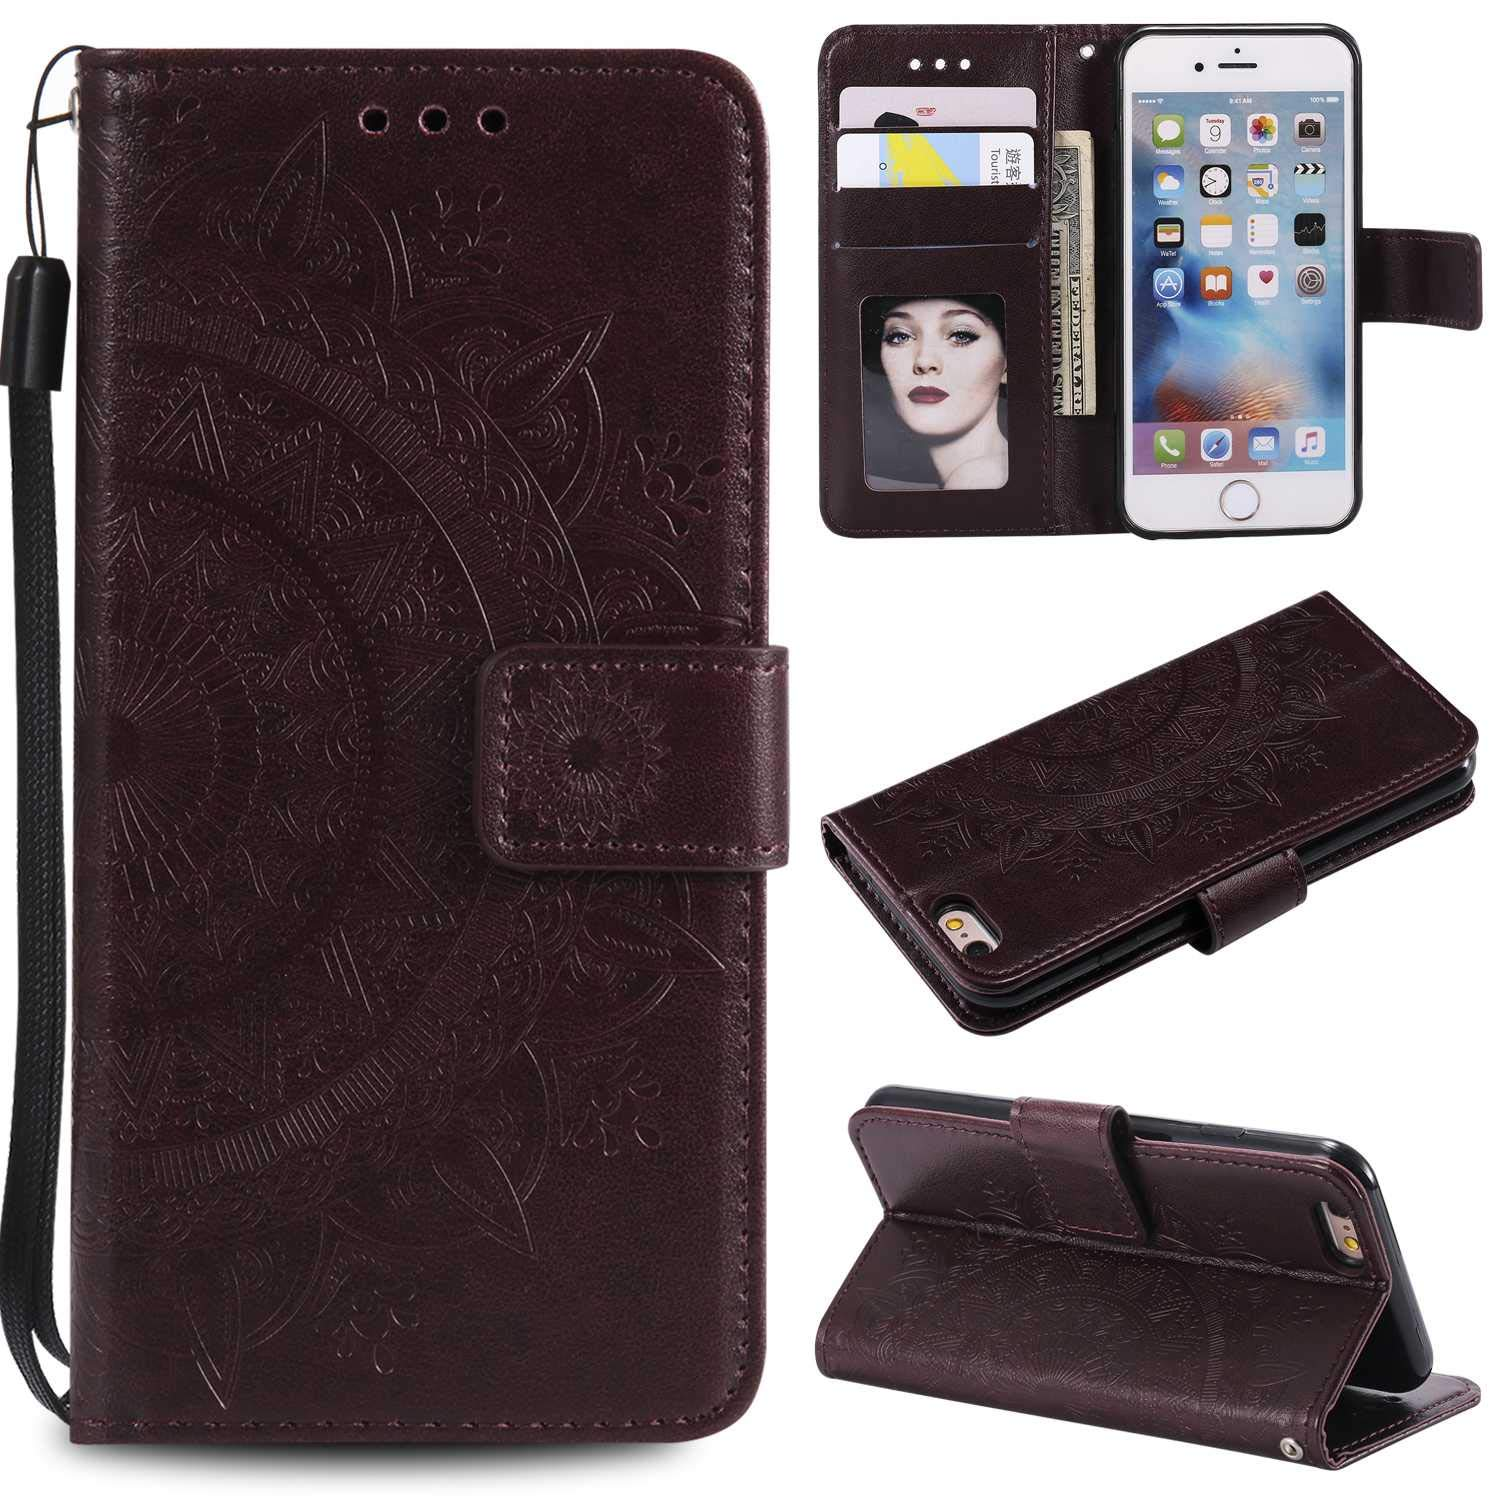 Case iPhone XR, Bear Village PU Leather Embossed Design Case with Card Holder and ID Slot, Wallet Flip Stand Cover for Apple iPhone XR (#7 Brown)